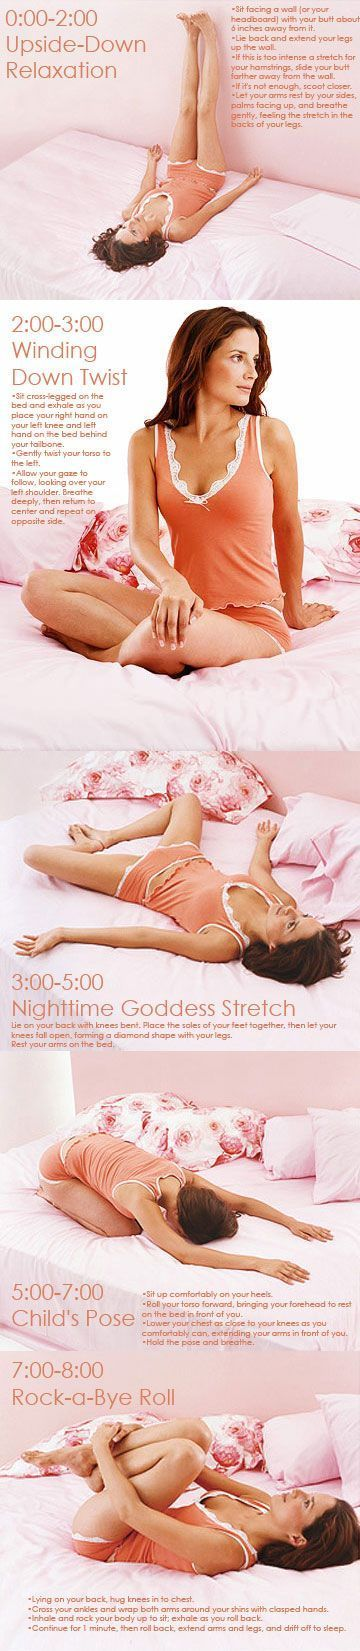 8-Minute Workout: Yoga for Better Sleep. This is great in the morning before getting out of bed as it is just before sleep.